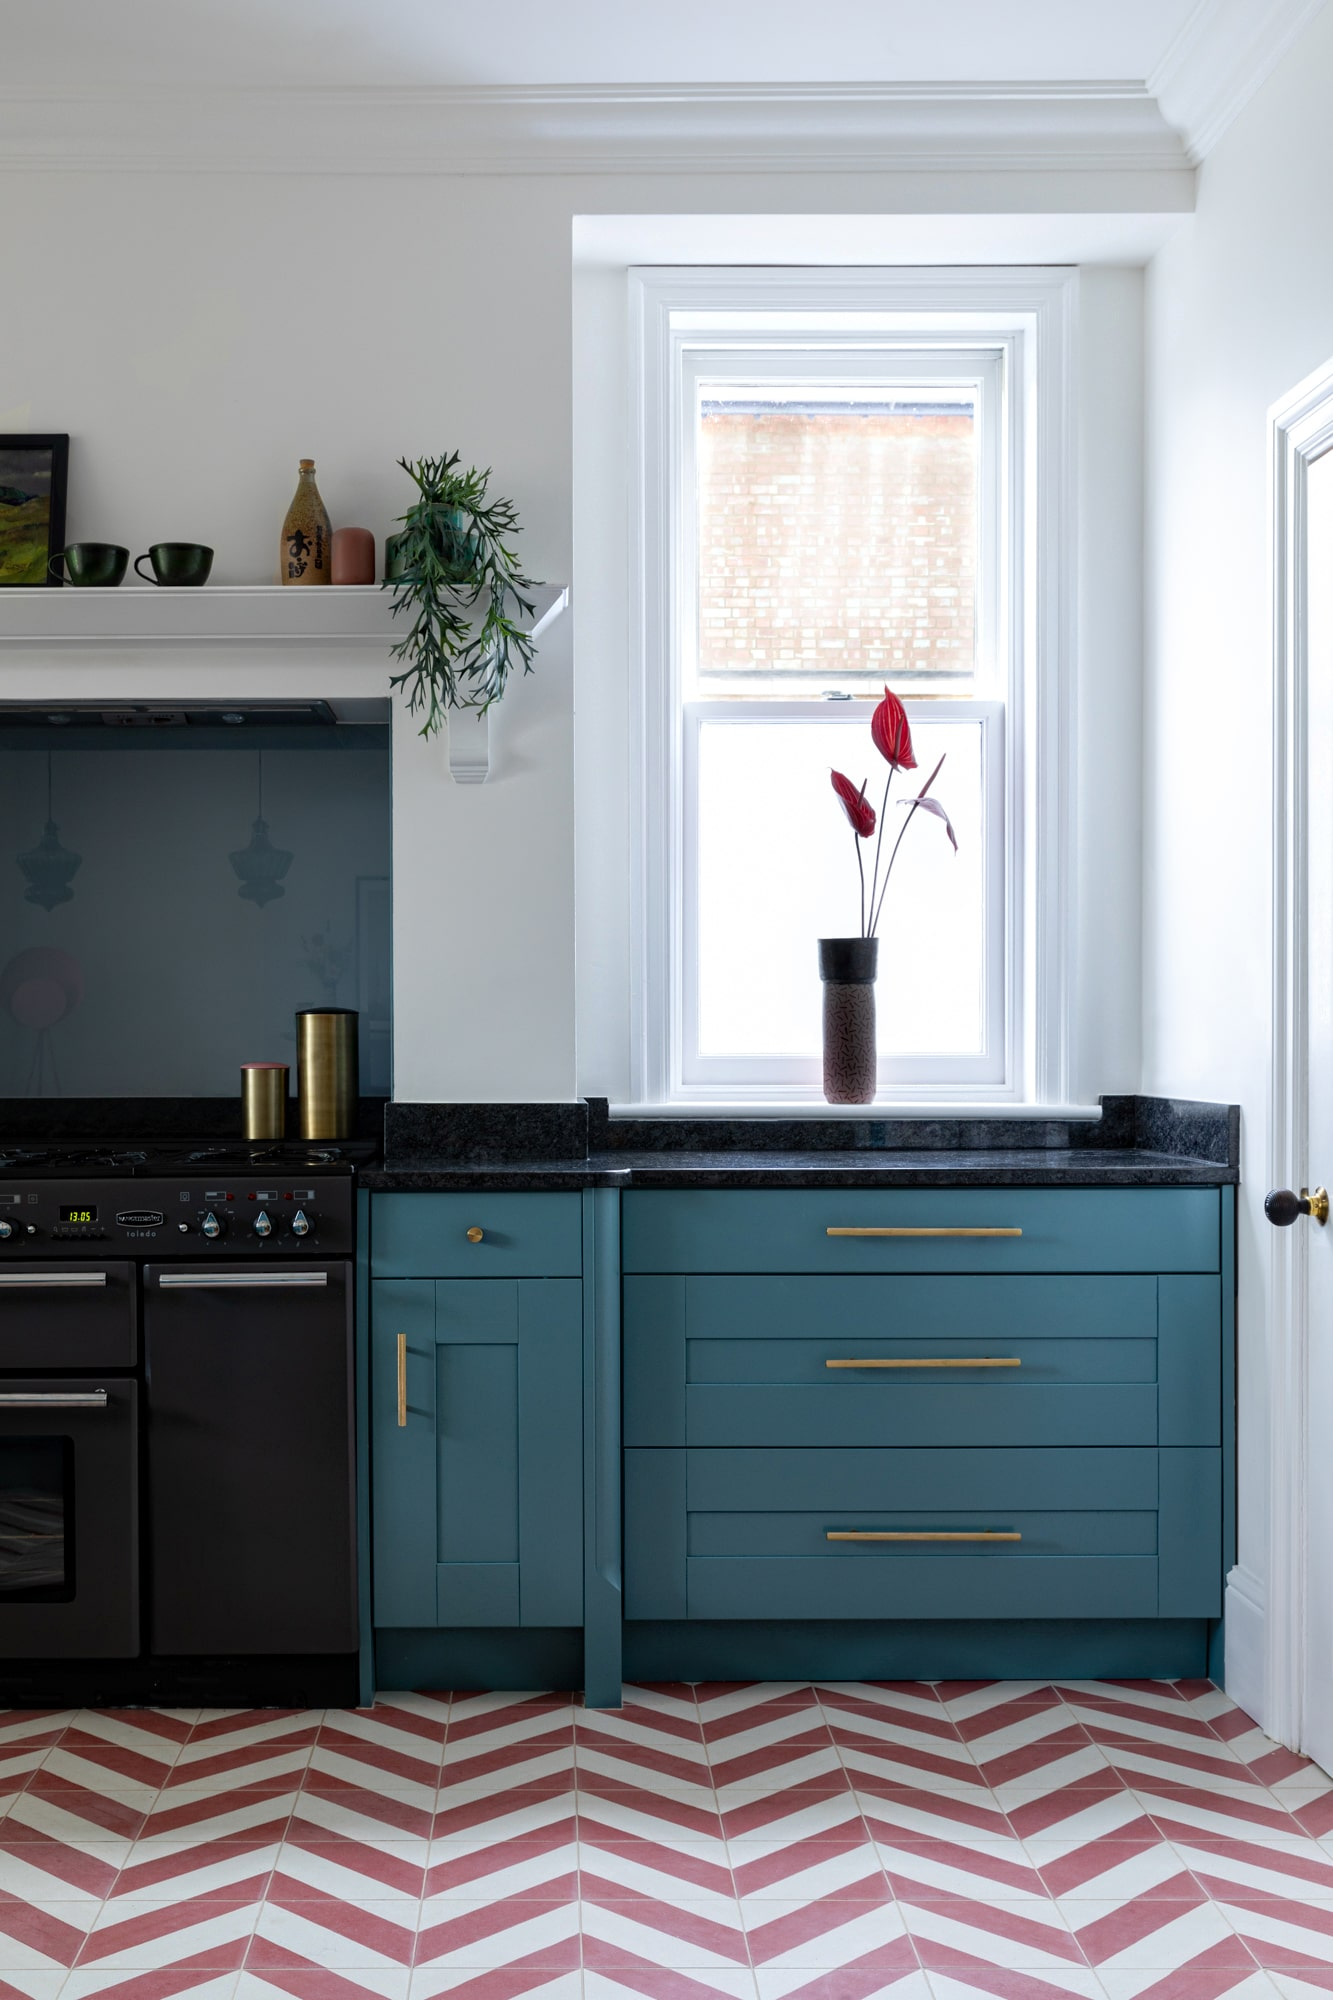 Inteiror photo: blue kitchen with pink and beige tiles